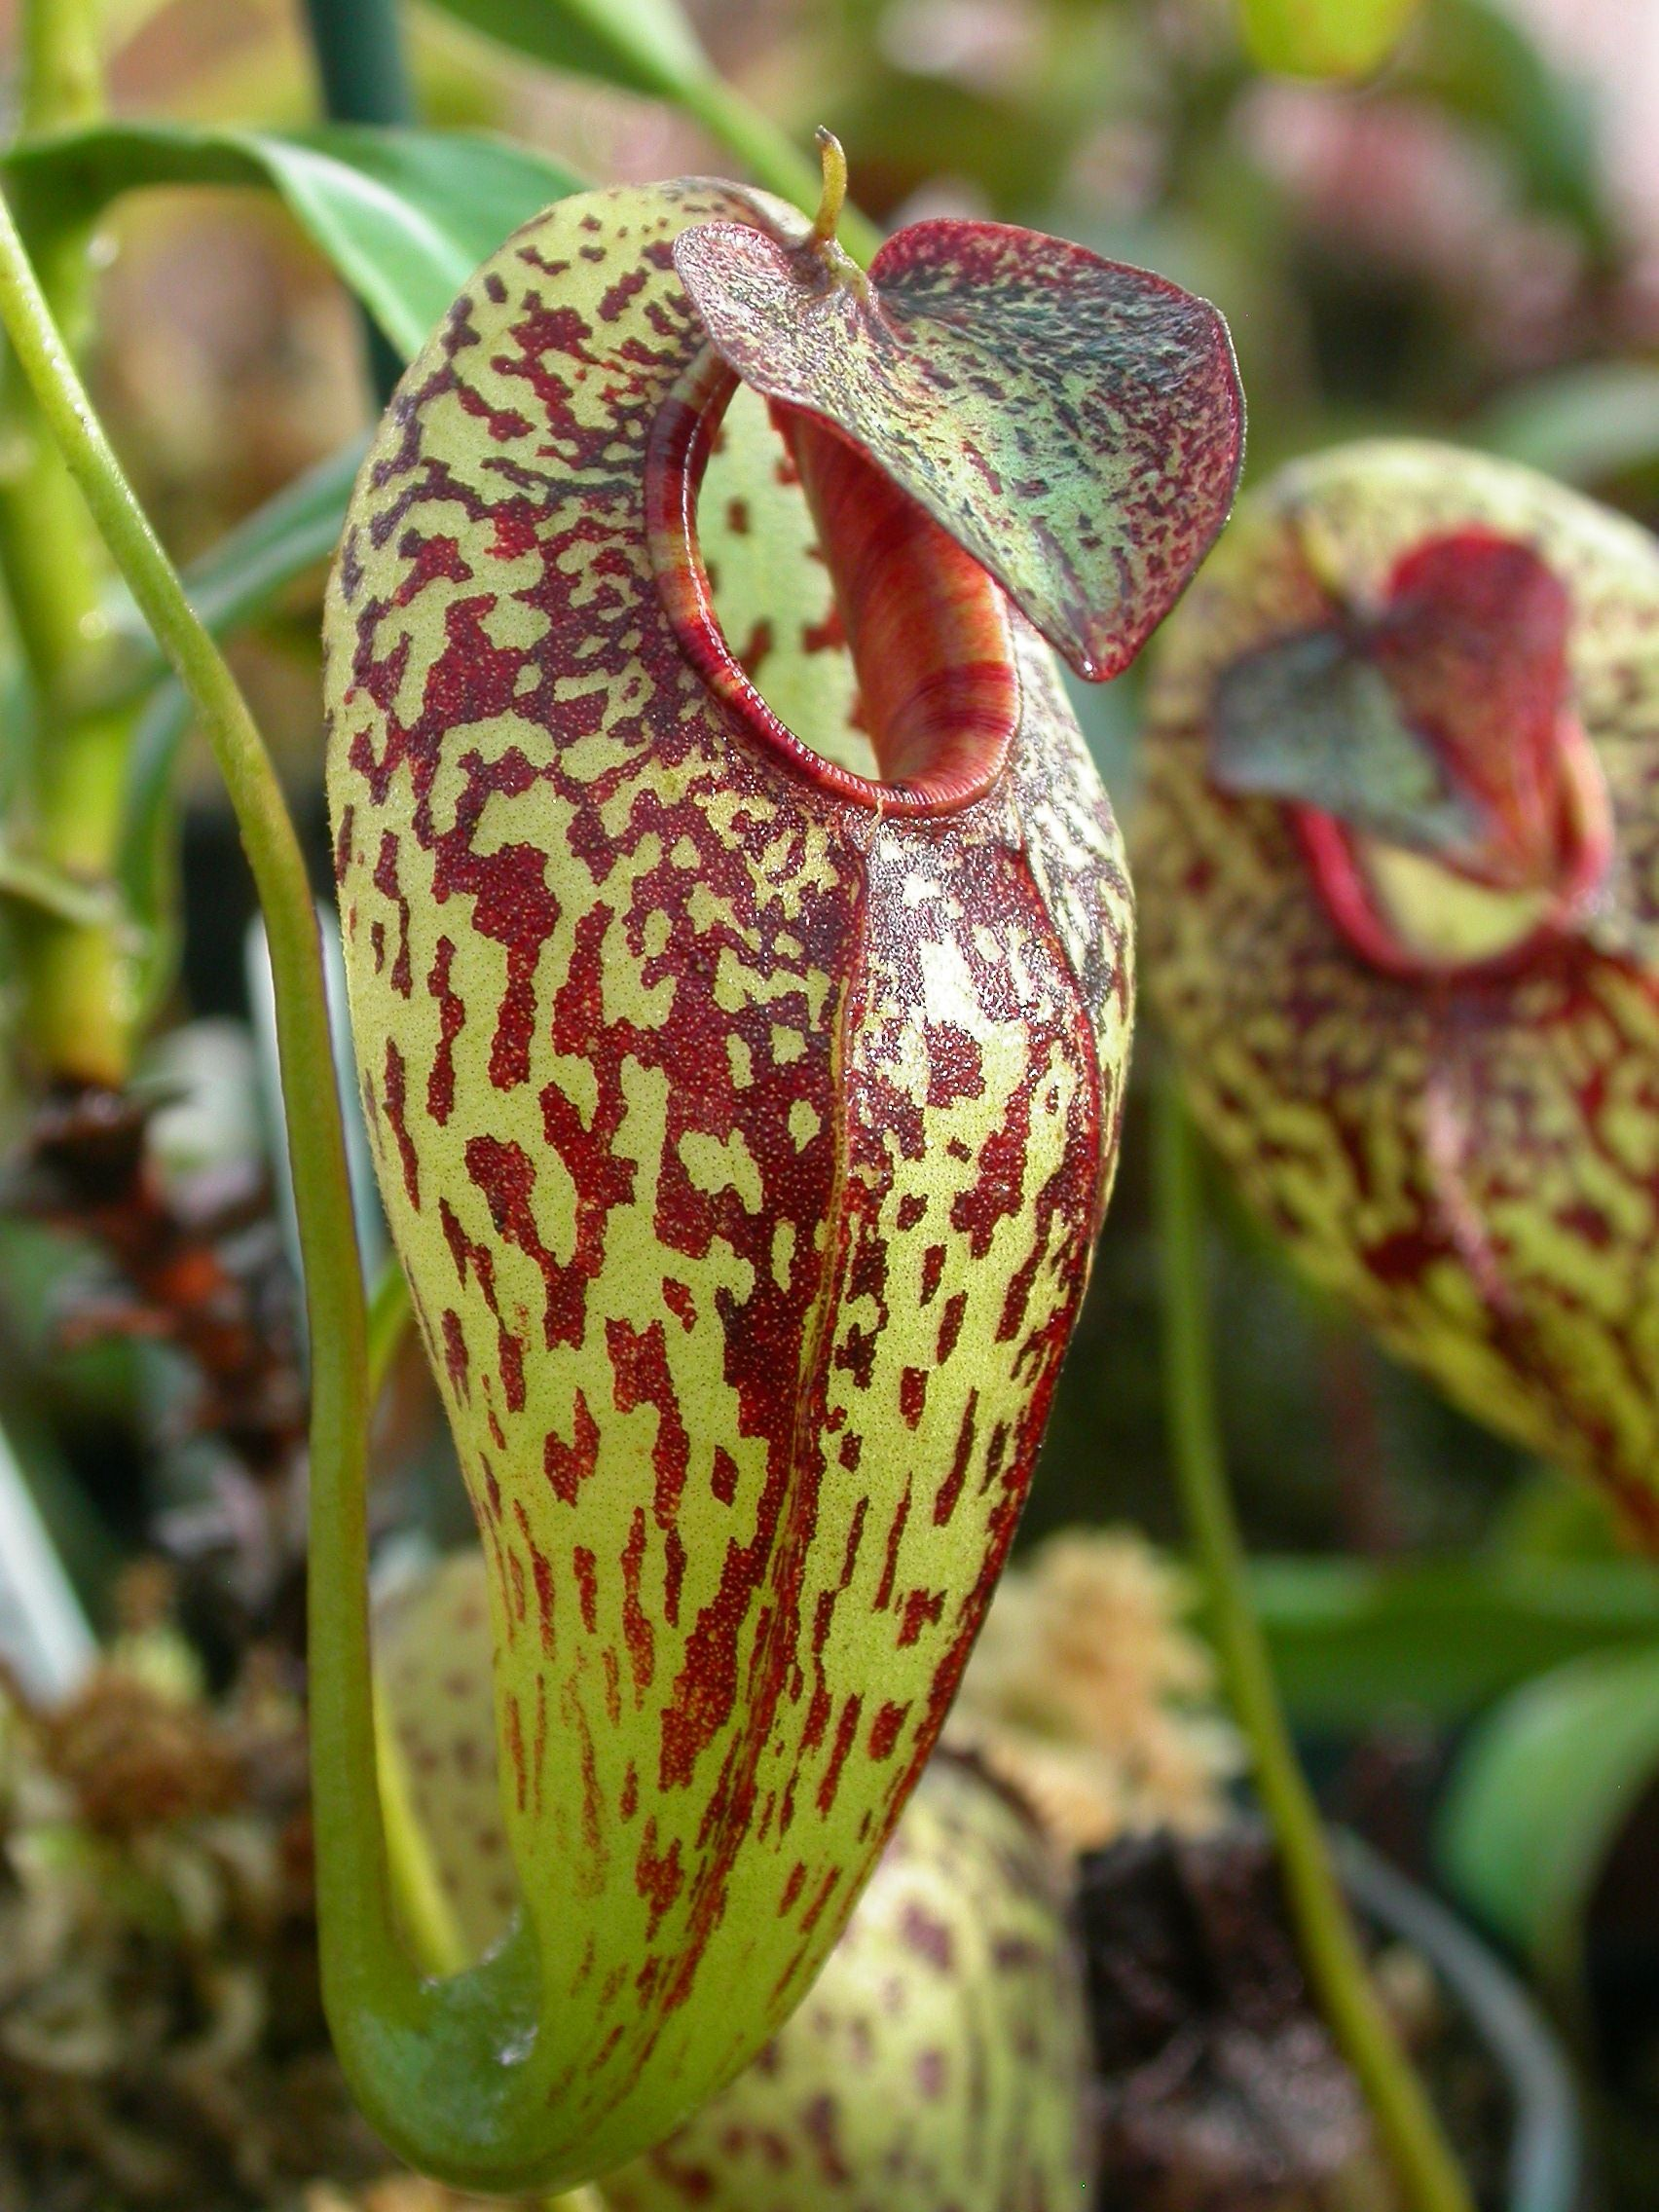 File:Nepenthes aristolochioides.jpg - Wikimedia Commons